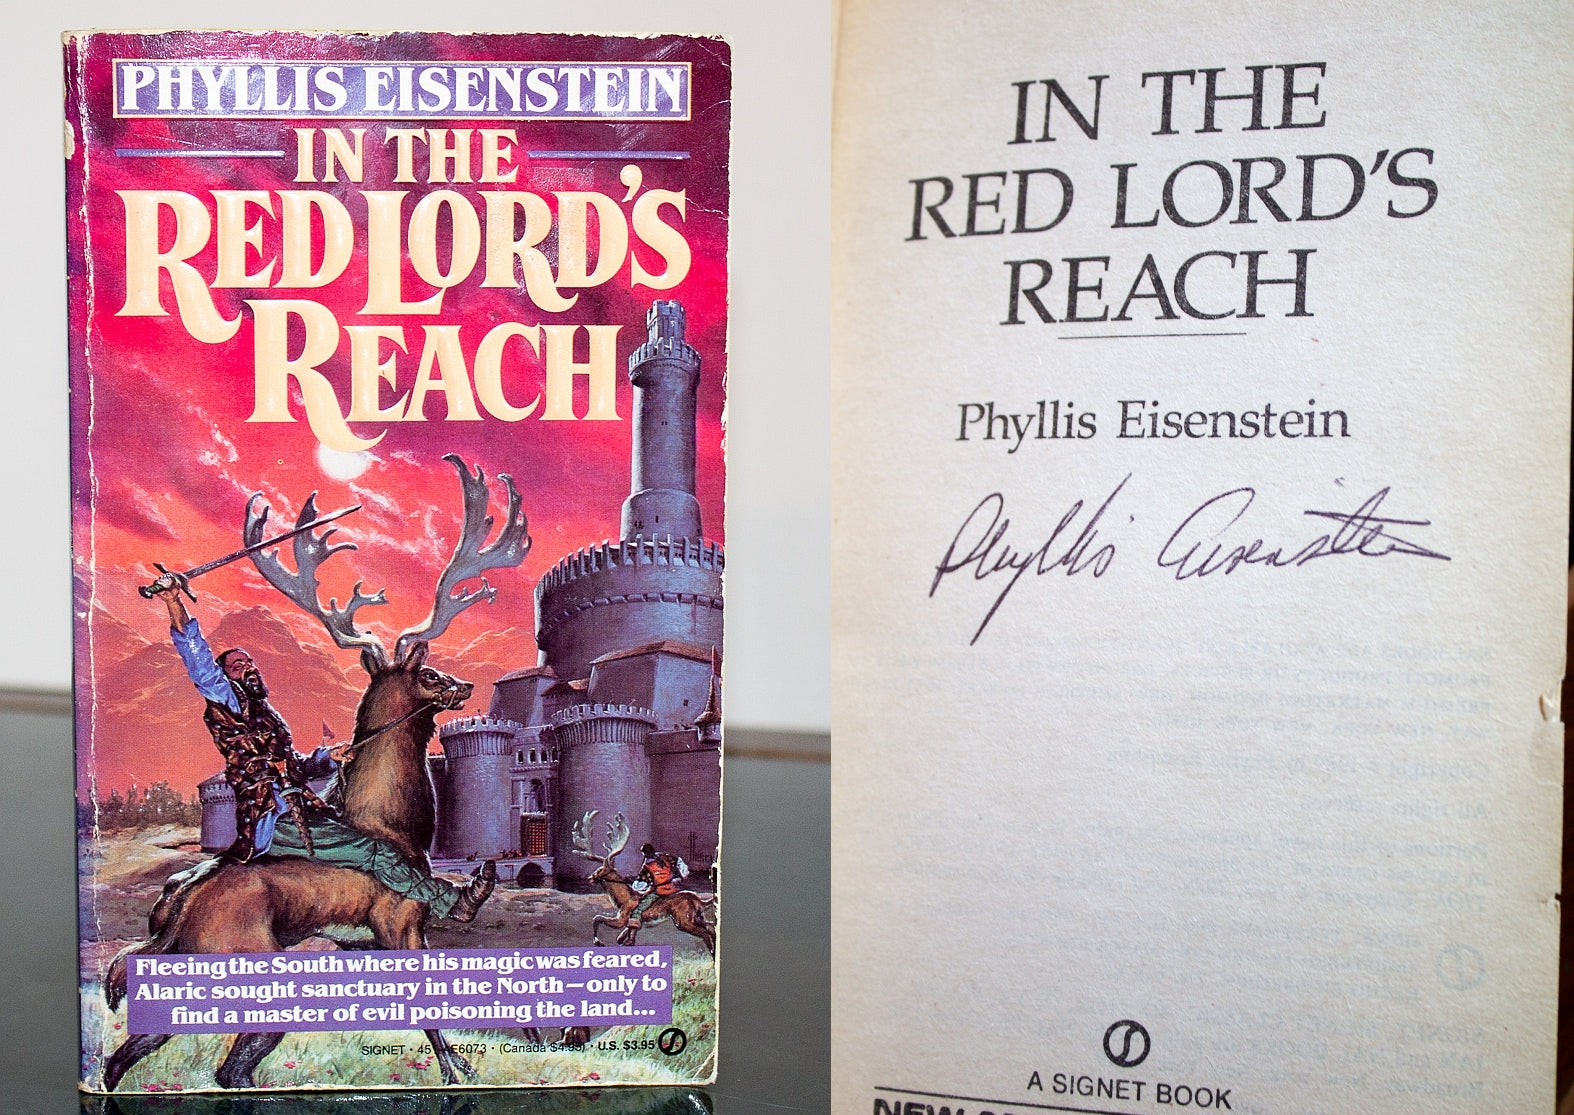 In the Red Lords Reach Tales of Alaric the Minstrel by Phyllis Eisenstein SIGNED